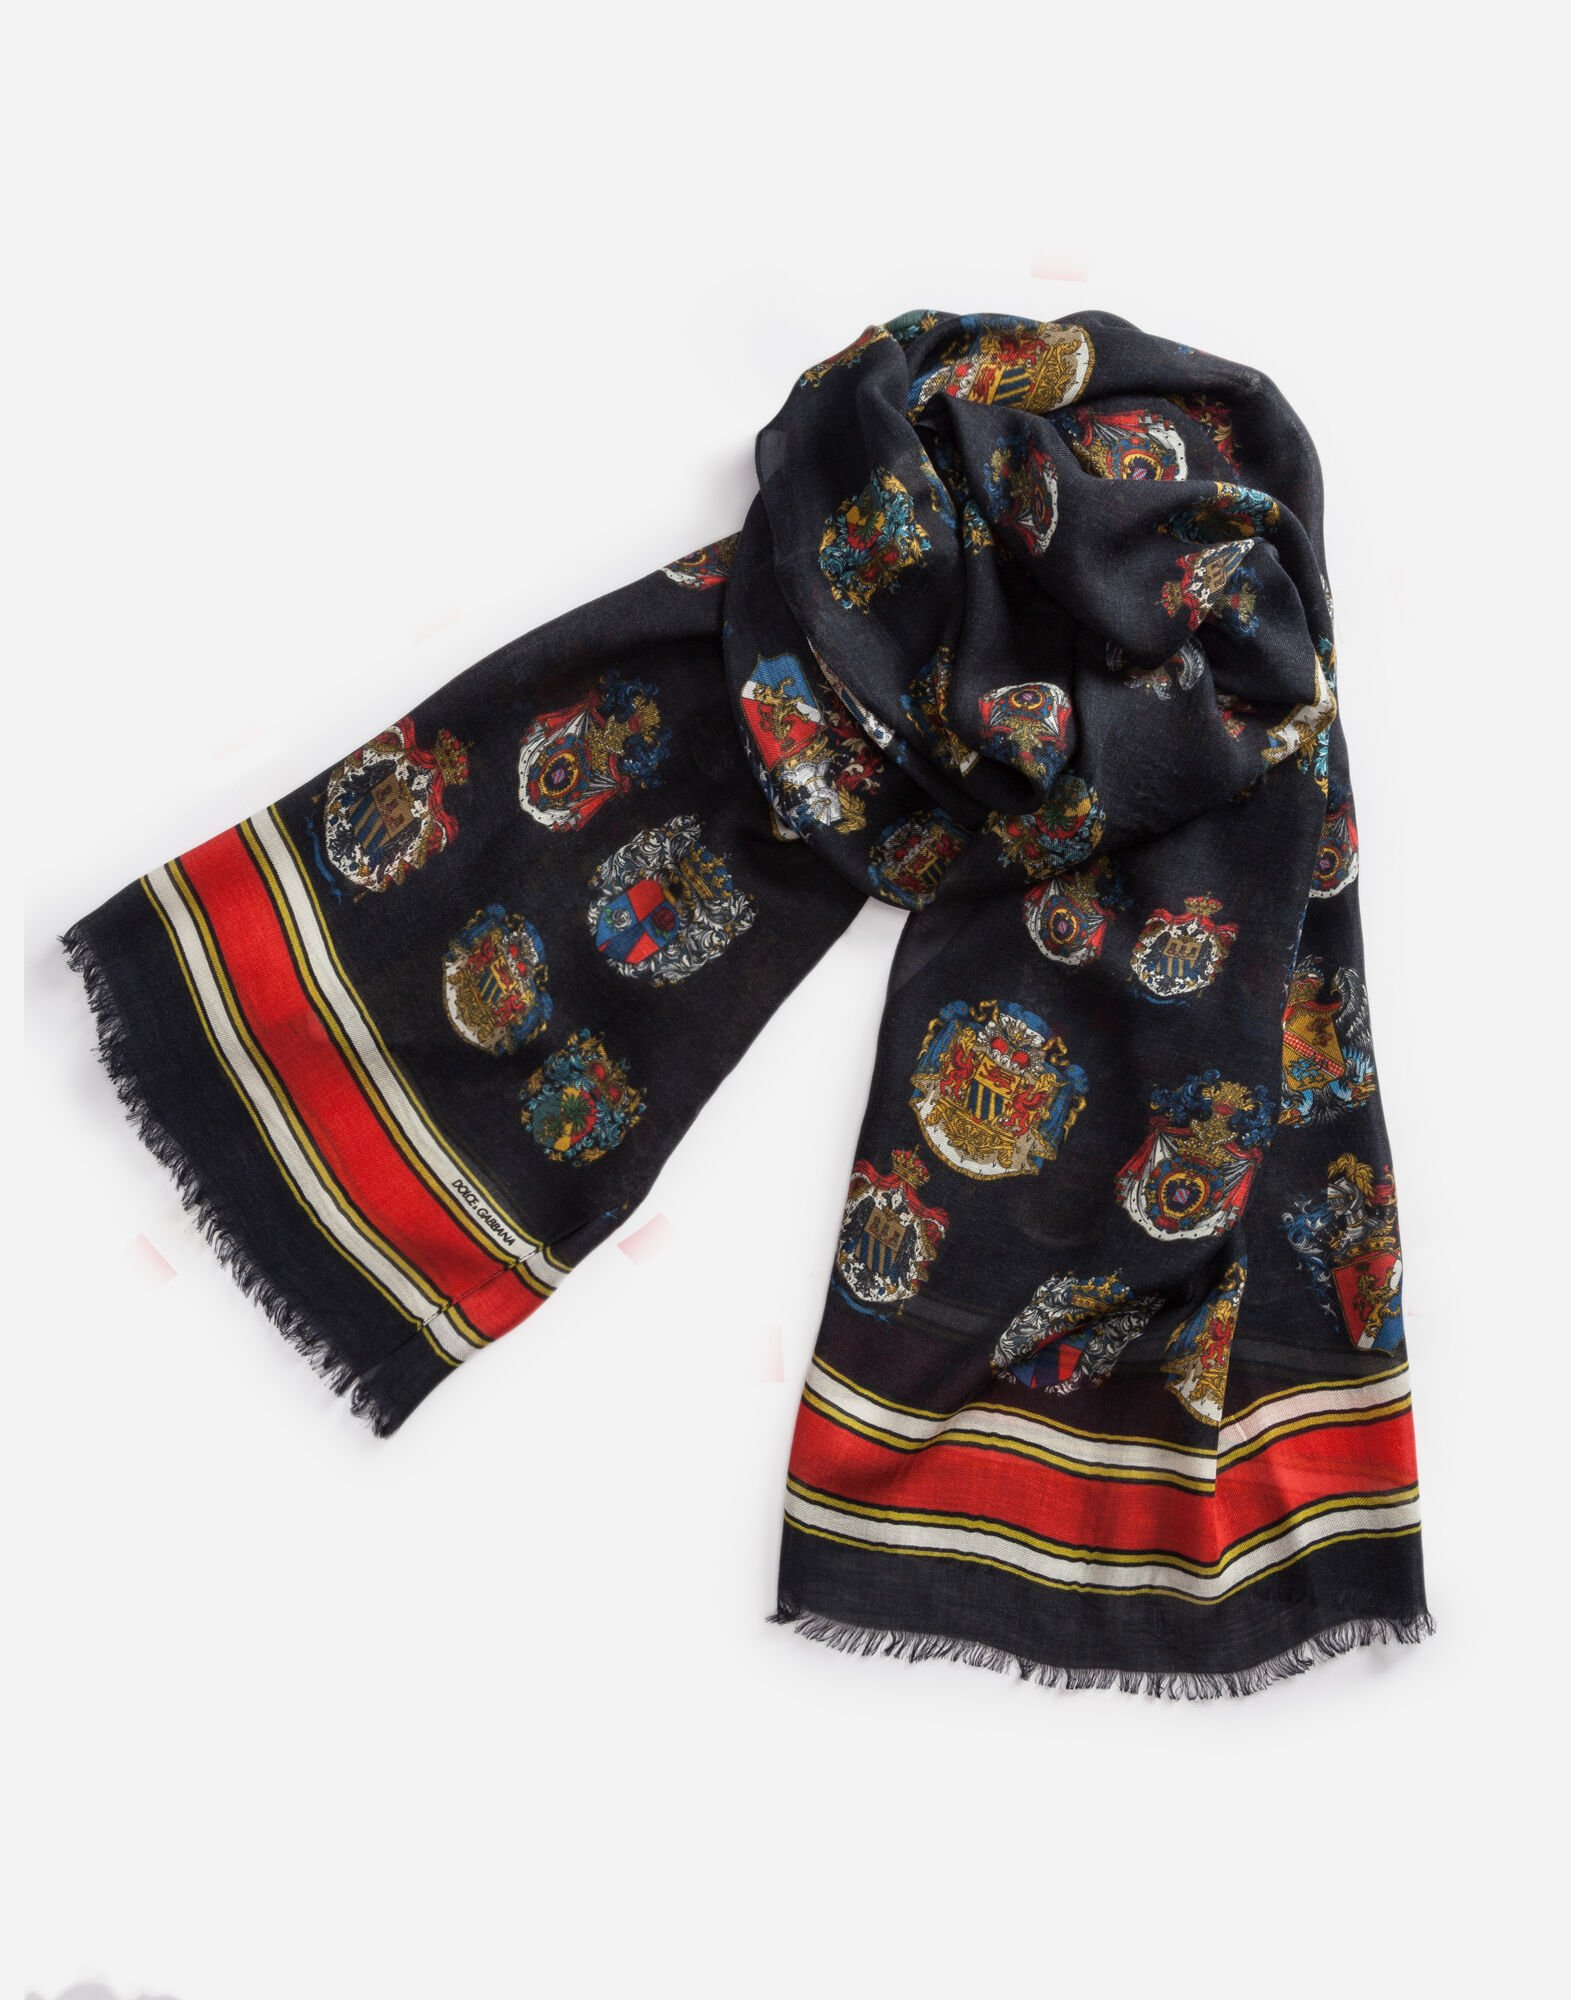 PRINTED CASHMERE/MODAL SCARF